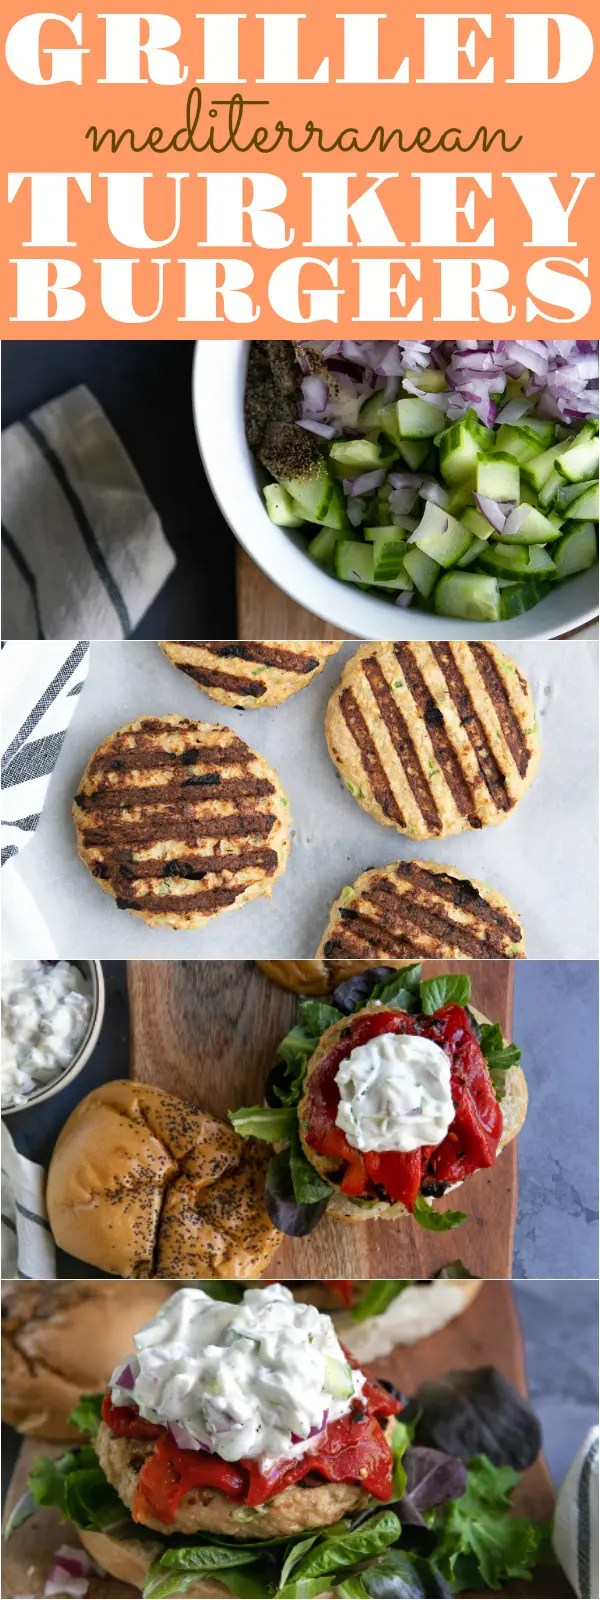 Mediterranean Grilled Turkey Burgers are an easy and delicious ground turkey recipe loved by the whole family. Topped with roasted red peppers, fresh greens, and a refreshing cucumber yogurt sauce, these Mediterranean Turkey Burgers are guaranteed to be an instant favorite #turkey #groundturkey #turkeyburgers #mediterranean #mediterraneanrecipe #easyrecipe #grilledrecipe #cucumberyogurt #roastedredpeppers | For this recipe and more visit, https://theforkedspoon.com